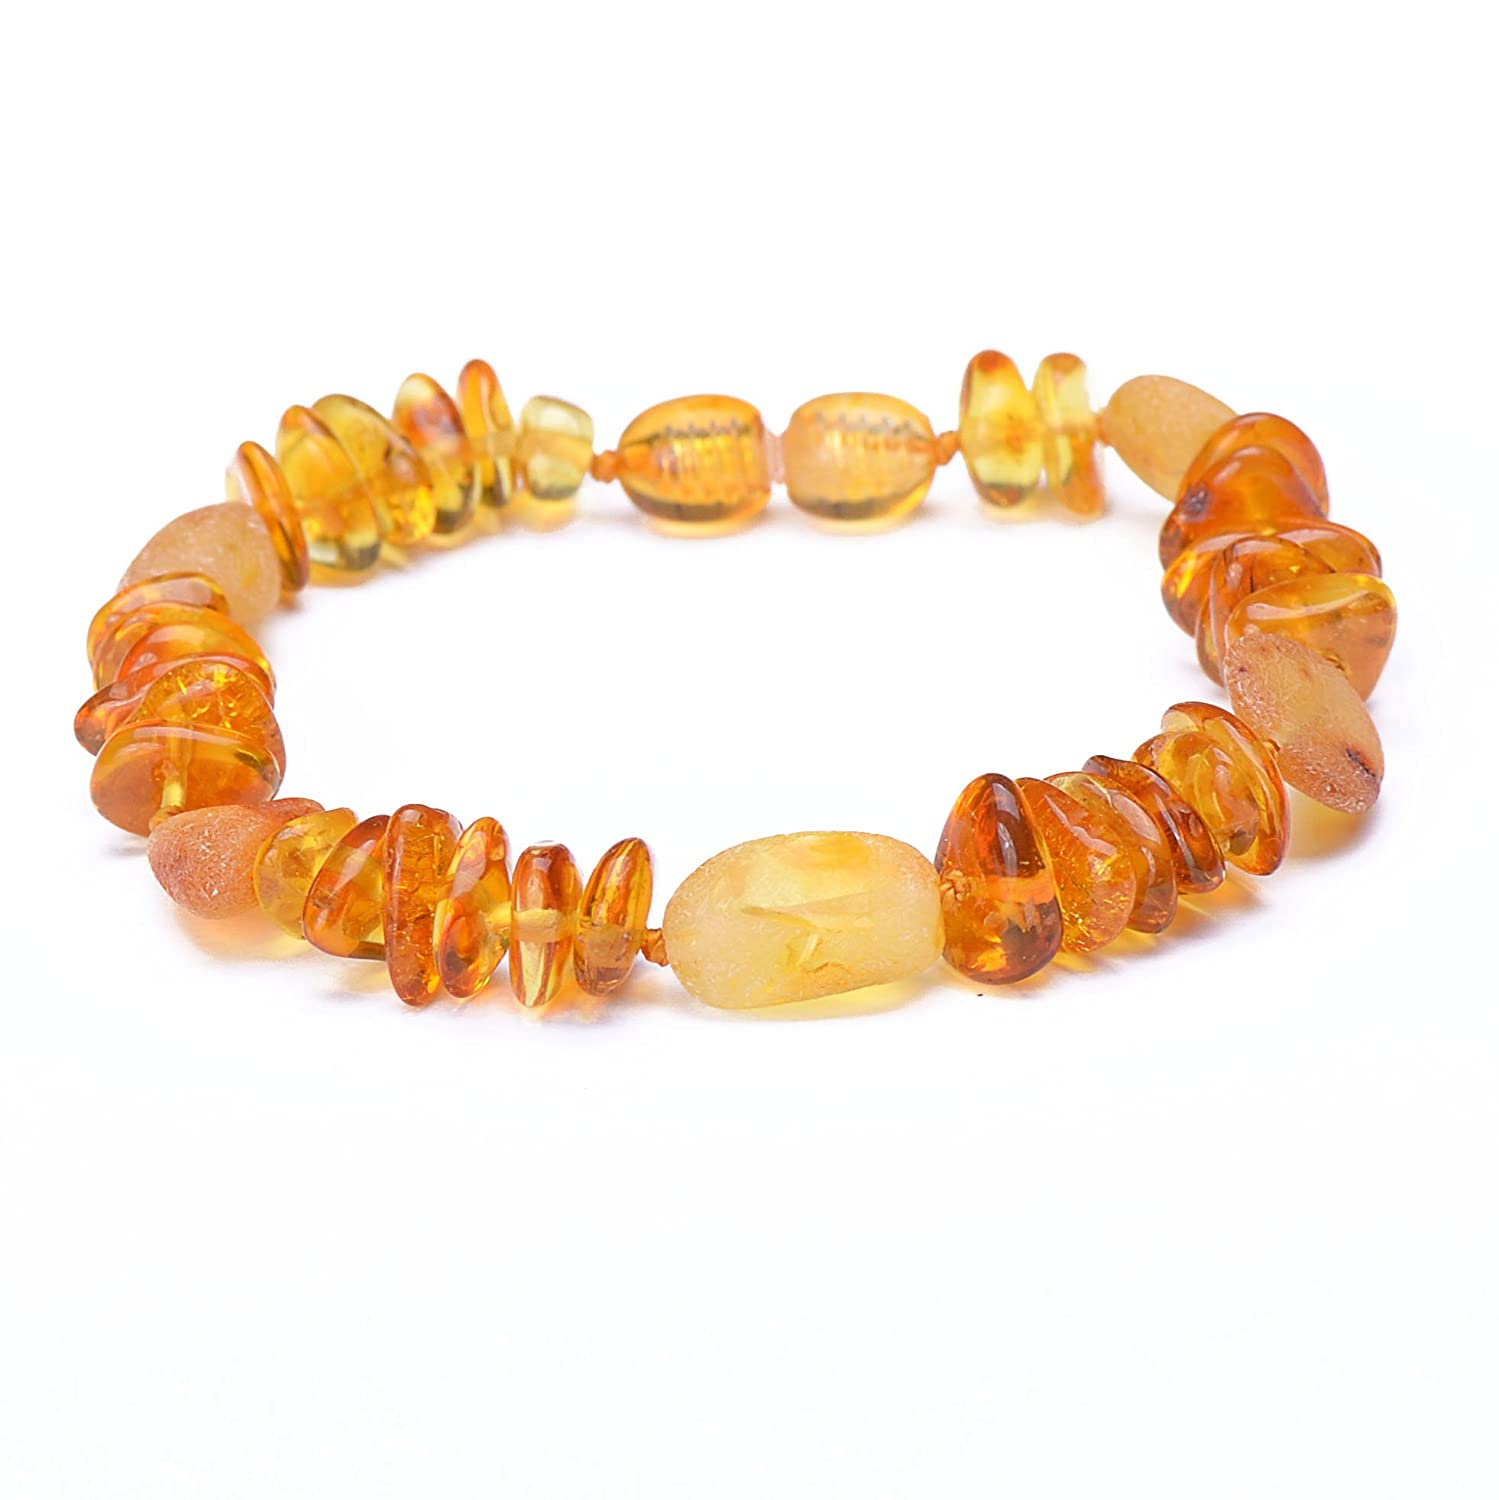 7 Inches, Mixed6 Polished Baltic Amber Bracelet for Adult with A Plastic Screw Choose Your Color and Choose Your Size! 3 Sizes and 6 Different Colors Genuine Baltic Amber